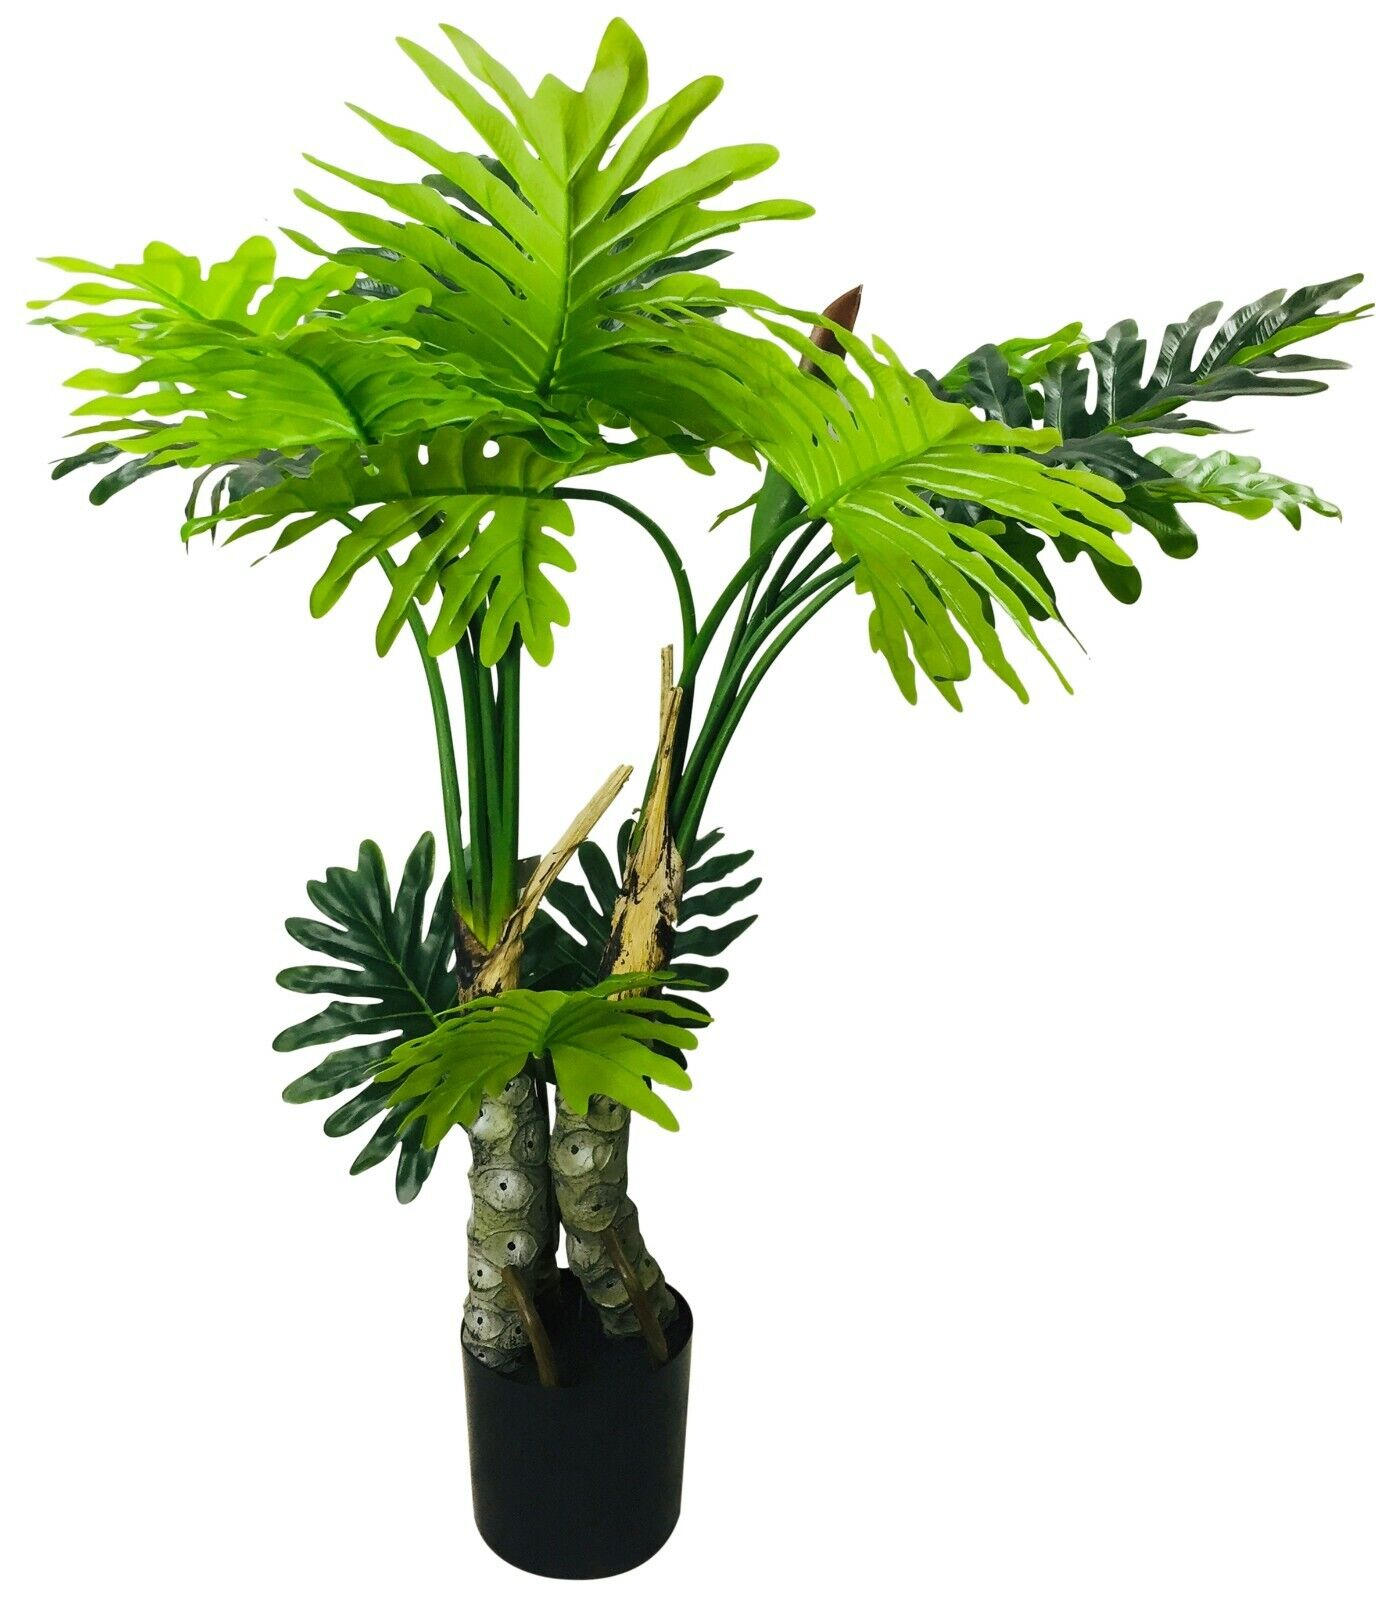 Artificial Philodendron Tree Fake Plant Indoor Outdoor Home Office Decor 135cm 5055851630109 Ebay